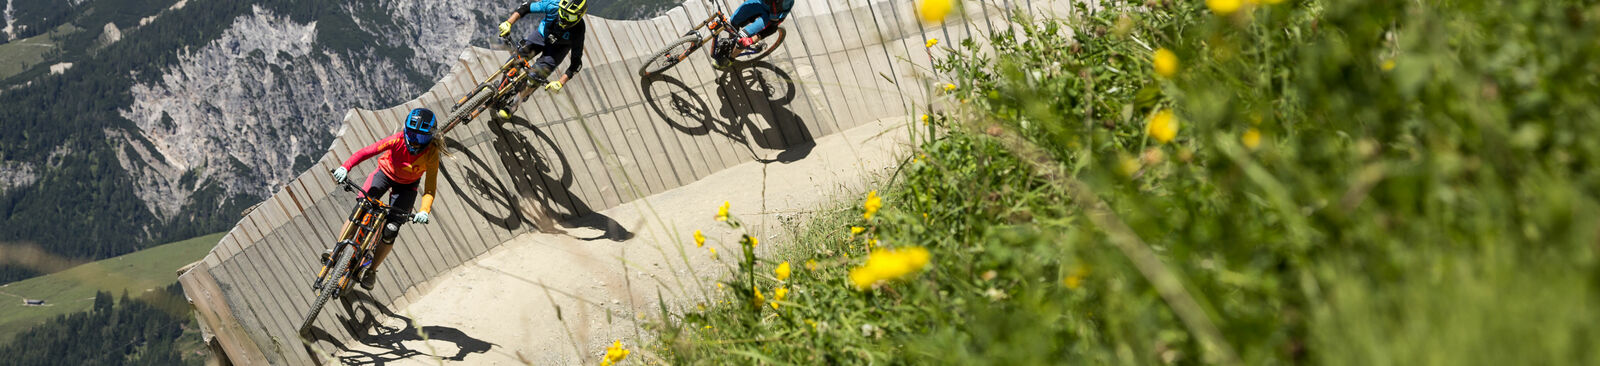 "Der ""Flying Gangster"" im Bikepark Leogang"